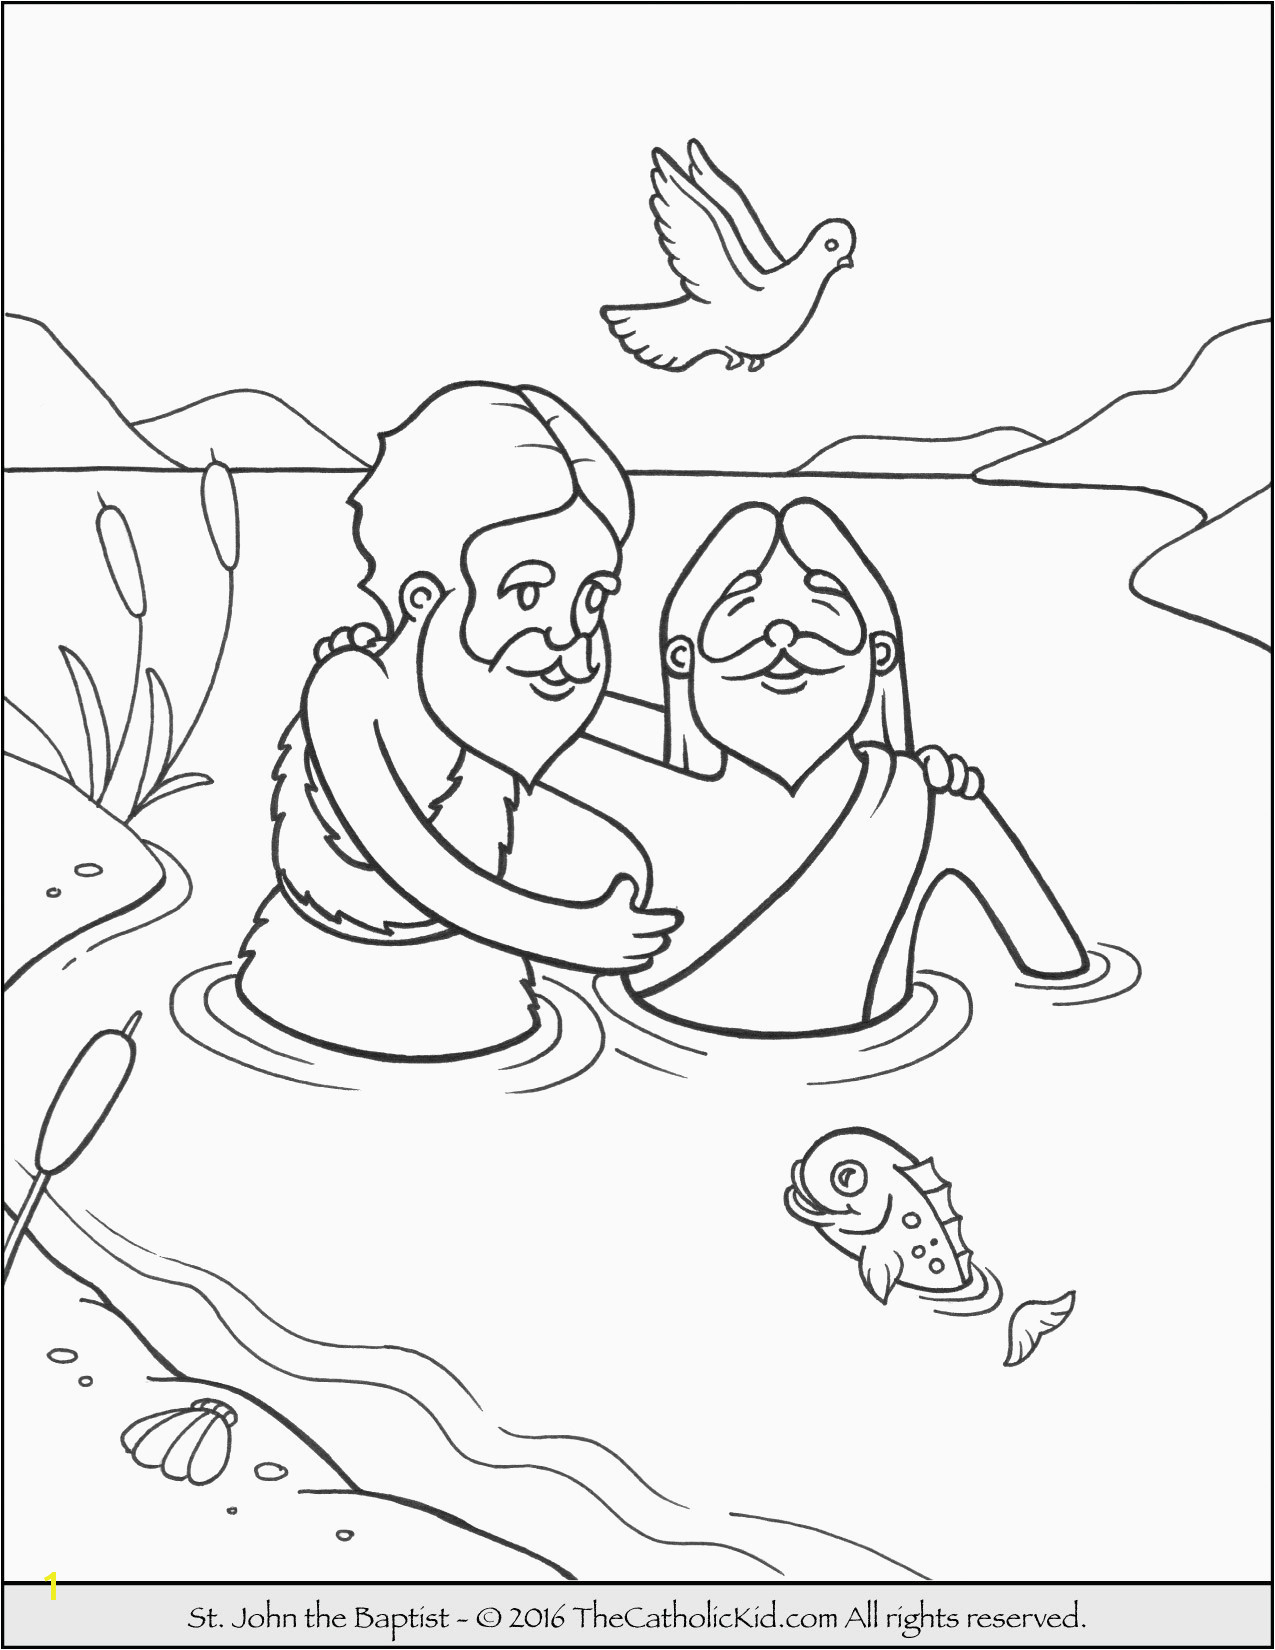 Coloring Pages For Christmas For Preschoolers Color Christmas Coloring Pages For Kids Cool Coloring Printables 0d – Fun